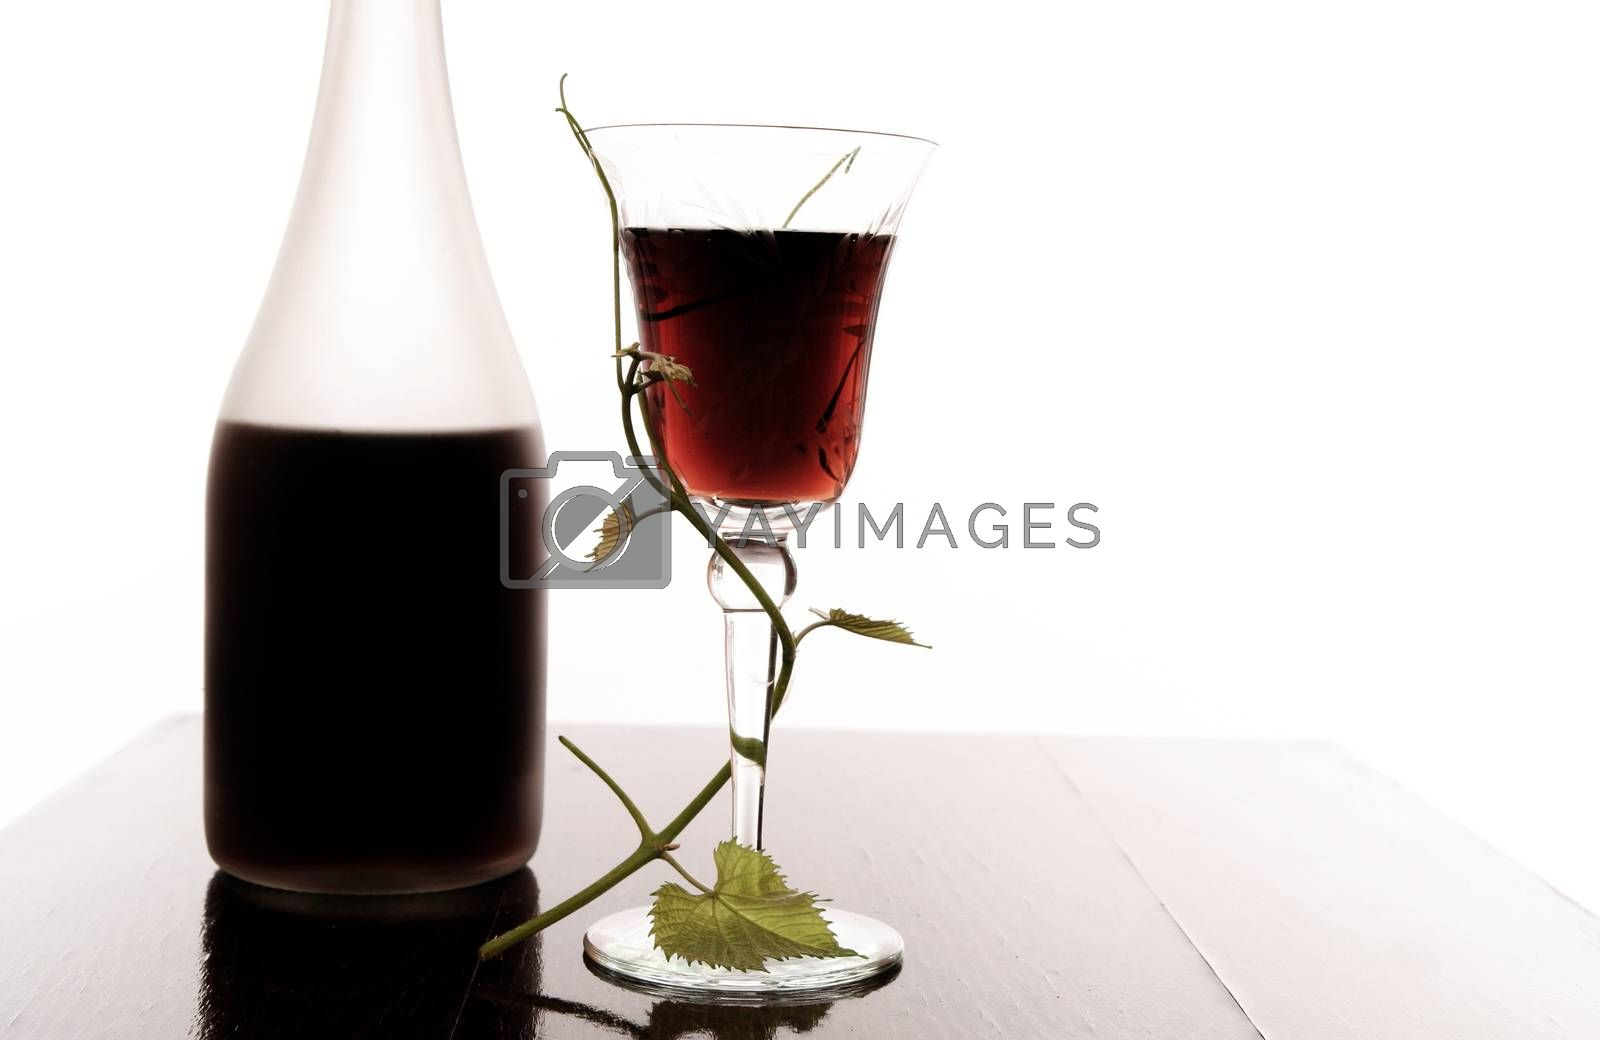 red wine glass and bottle isolated on white